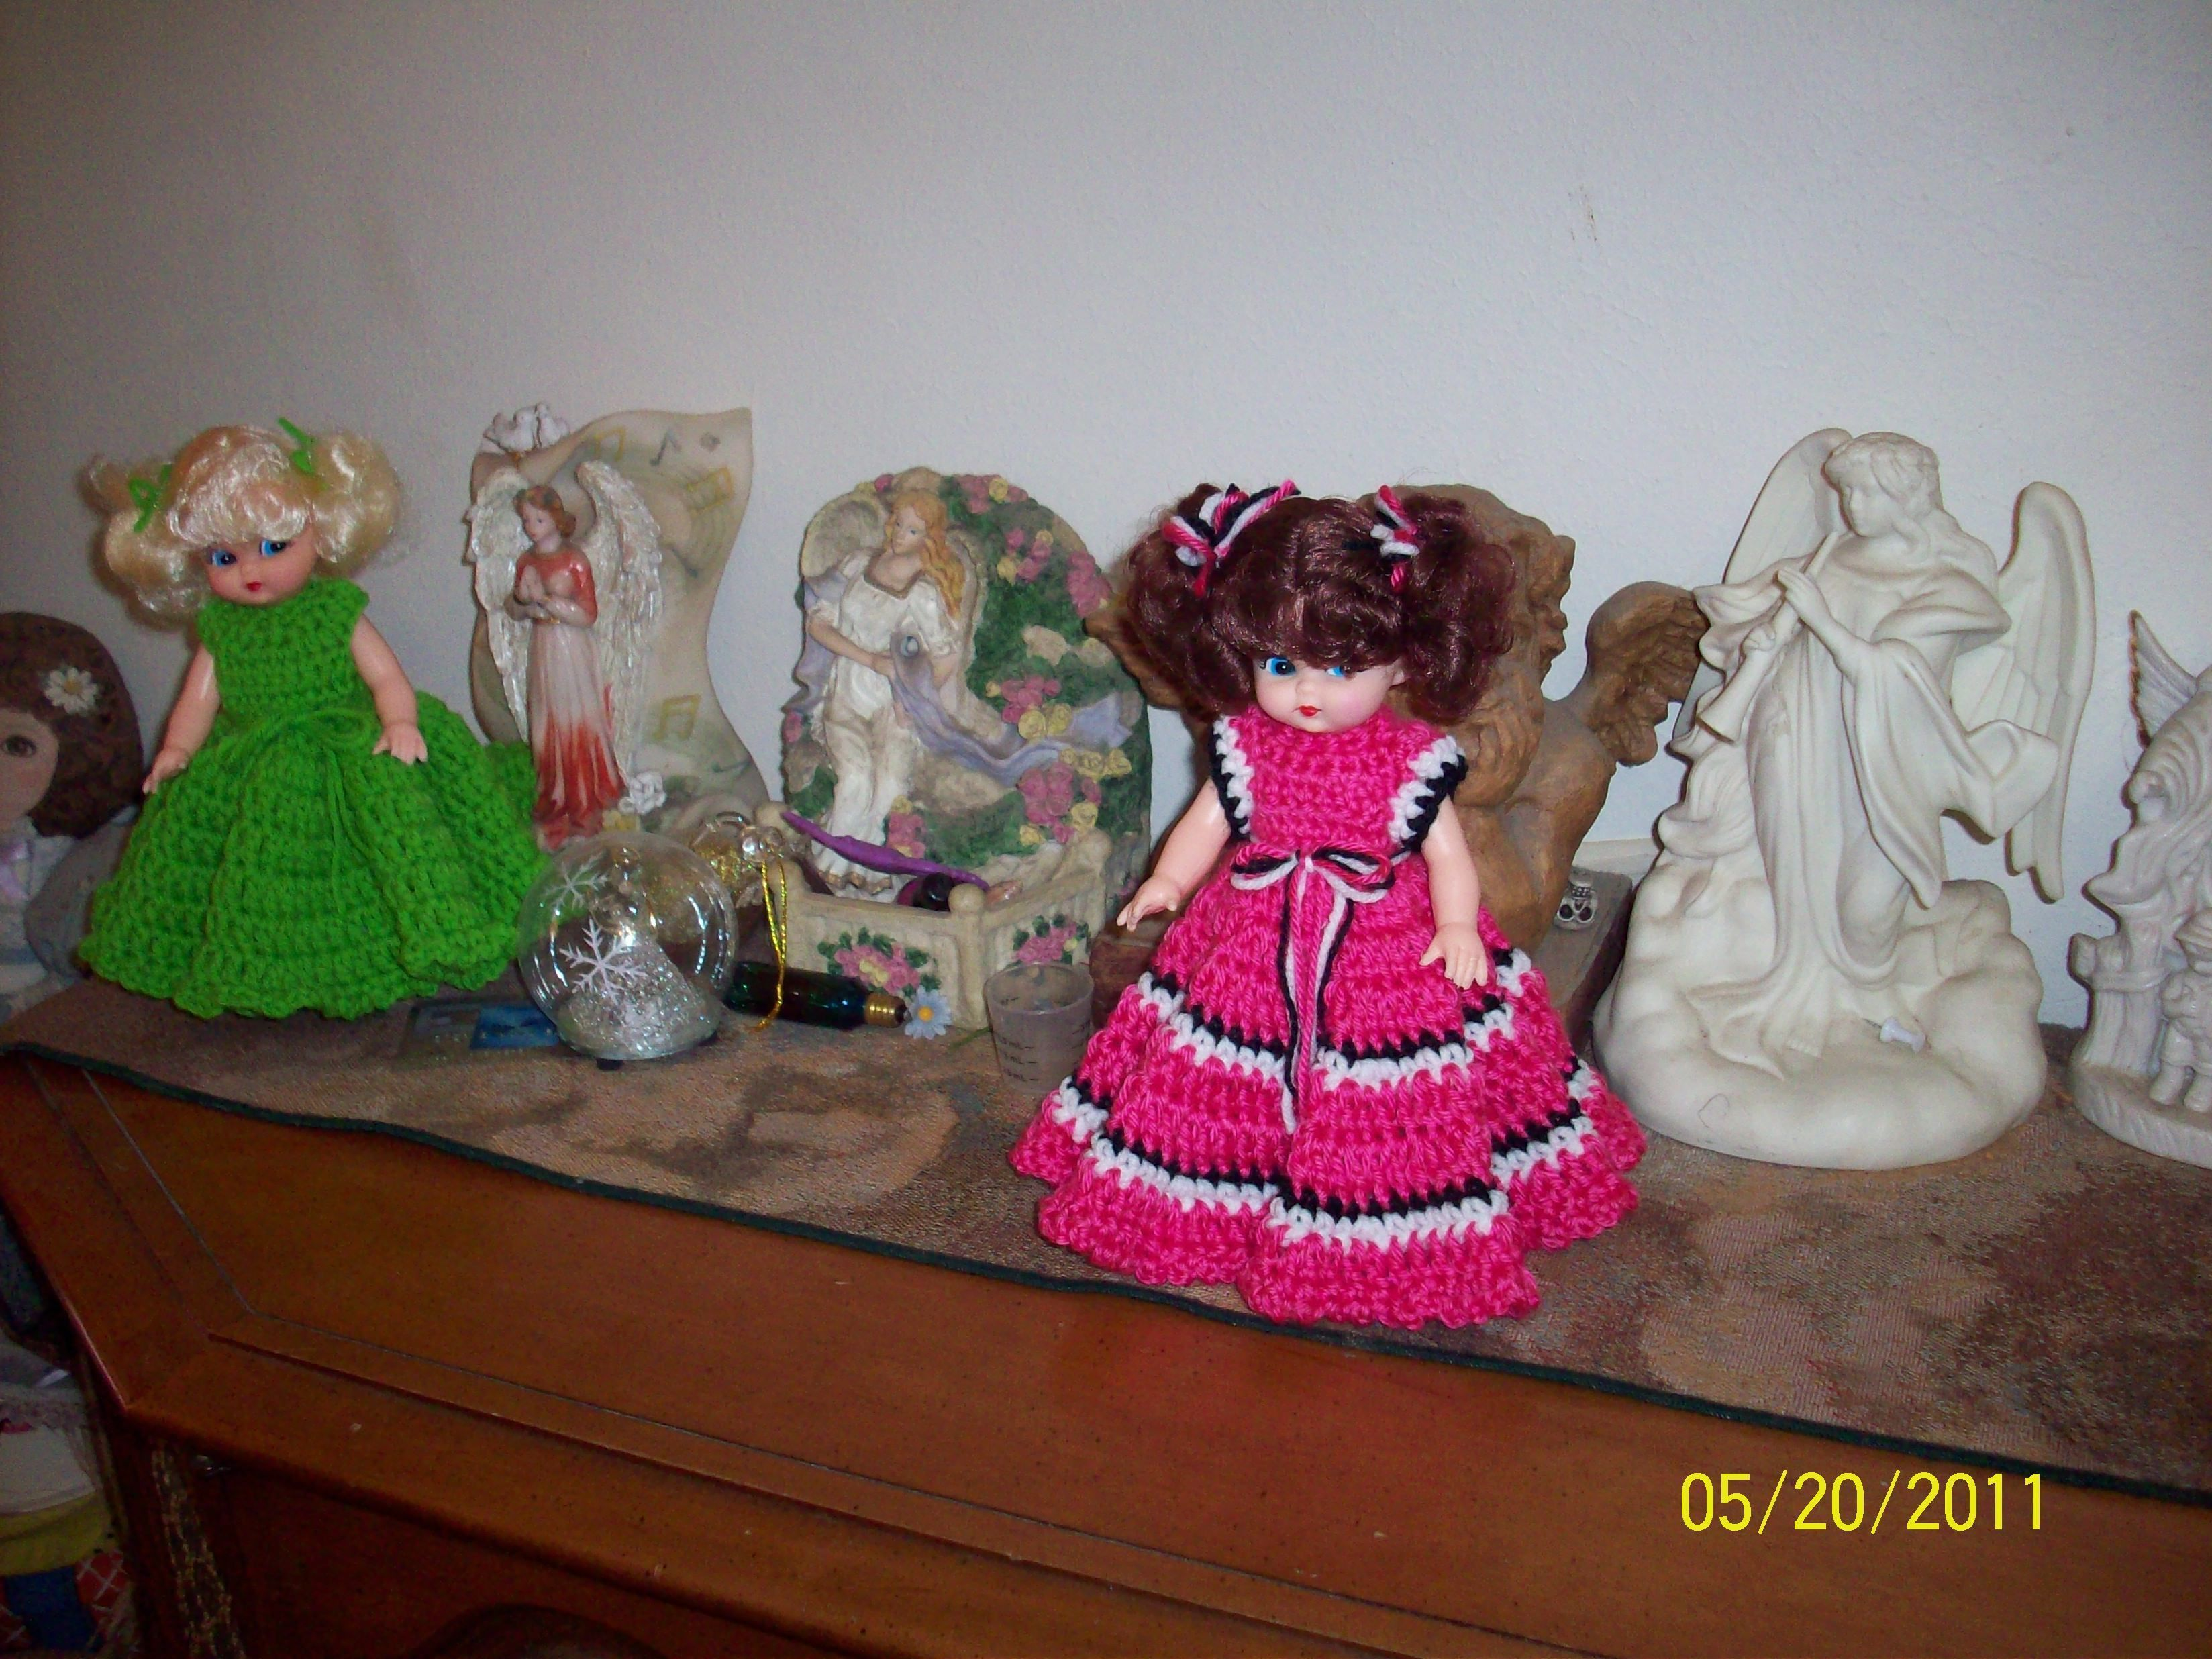 This is a air freshner doll. It is half a body and you crochet the dress to cover the air freshner.  You can buy the doll body at Hobby Lobby. #airfreshnerdolls This is a air freshner doll. It is half a body and you crochet the dress to cover the air freshner.  You can buy the doll body at Hobby Lobby. #airfreshnerdolls This is a air freshner doll. It is half a body and you crochet the dress to cover the air freshner.  You can buy the doll body at Hobby Lobby. #airfreshnerdolls This is a air fre #airfreshnerdolls